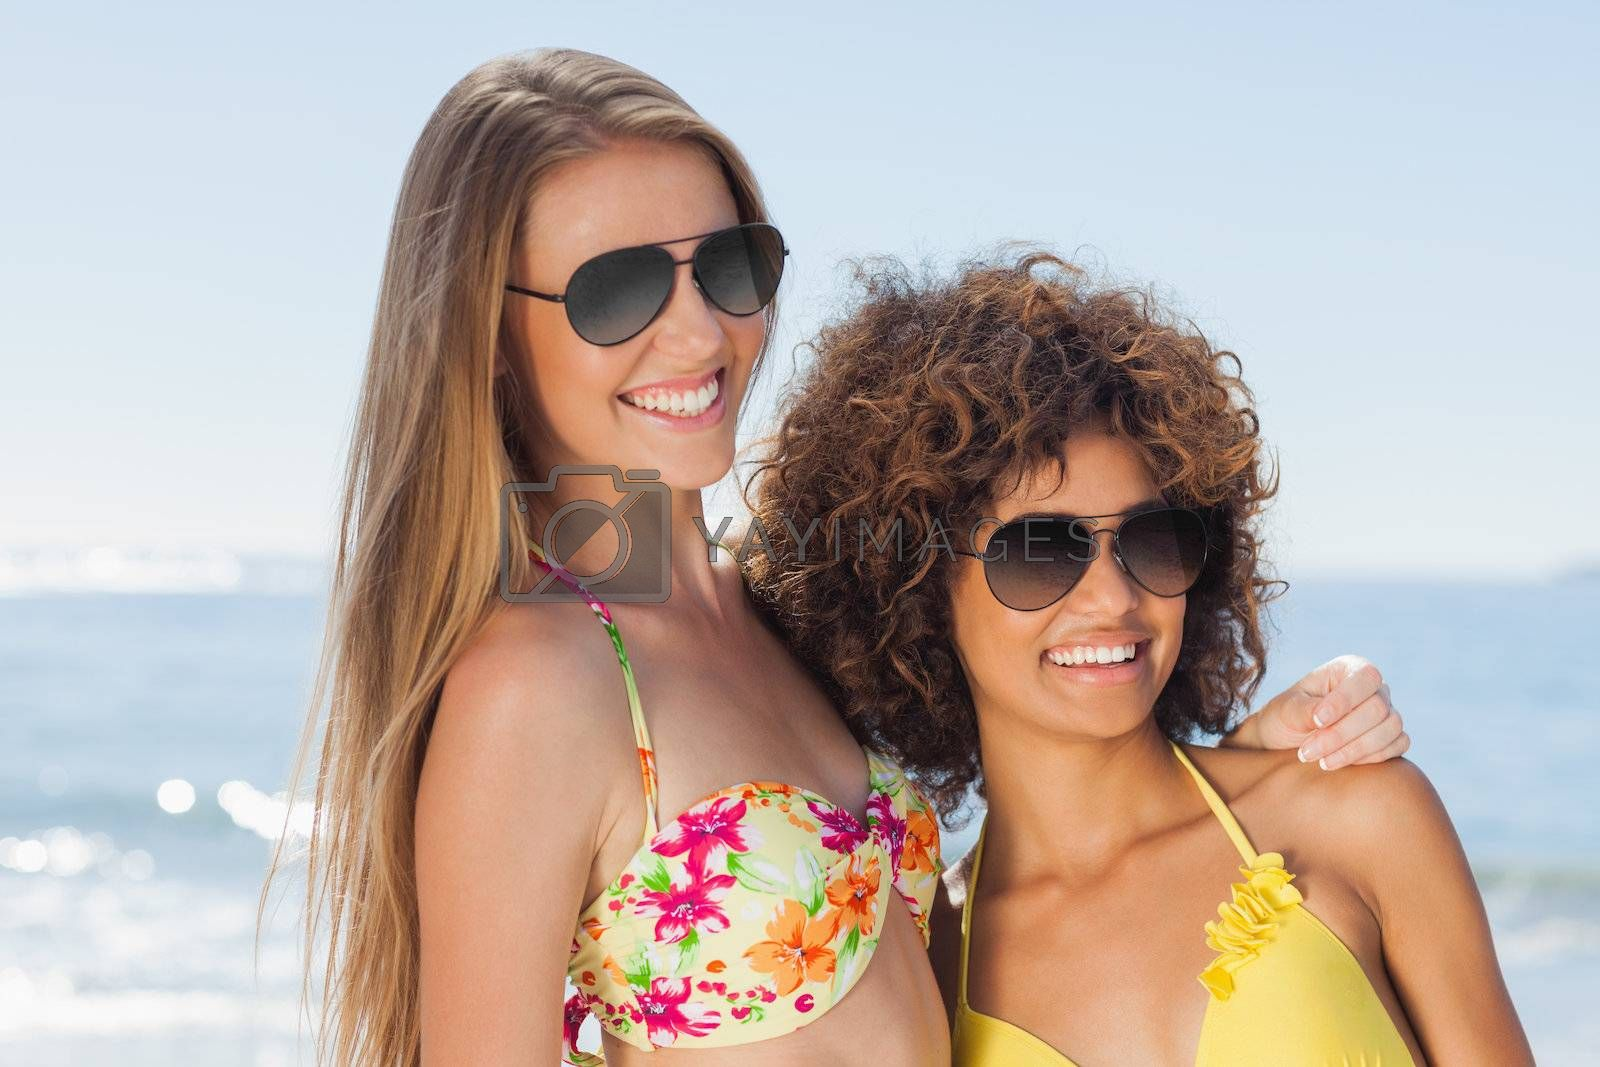 Two friends wearing sunglasses on the beach and smiling by Wavebreakmedia